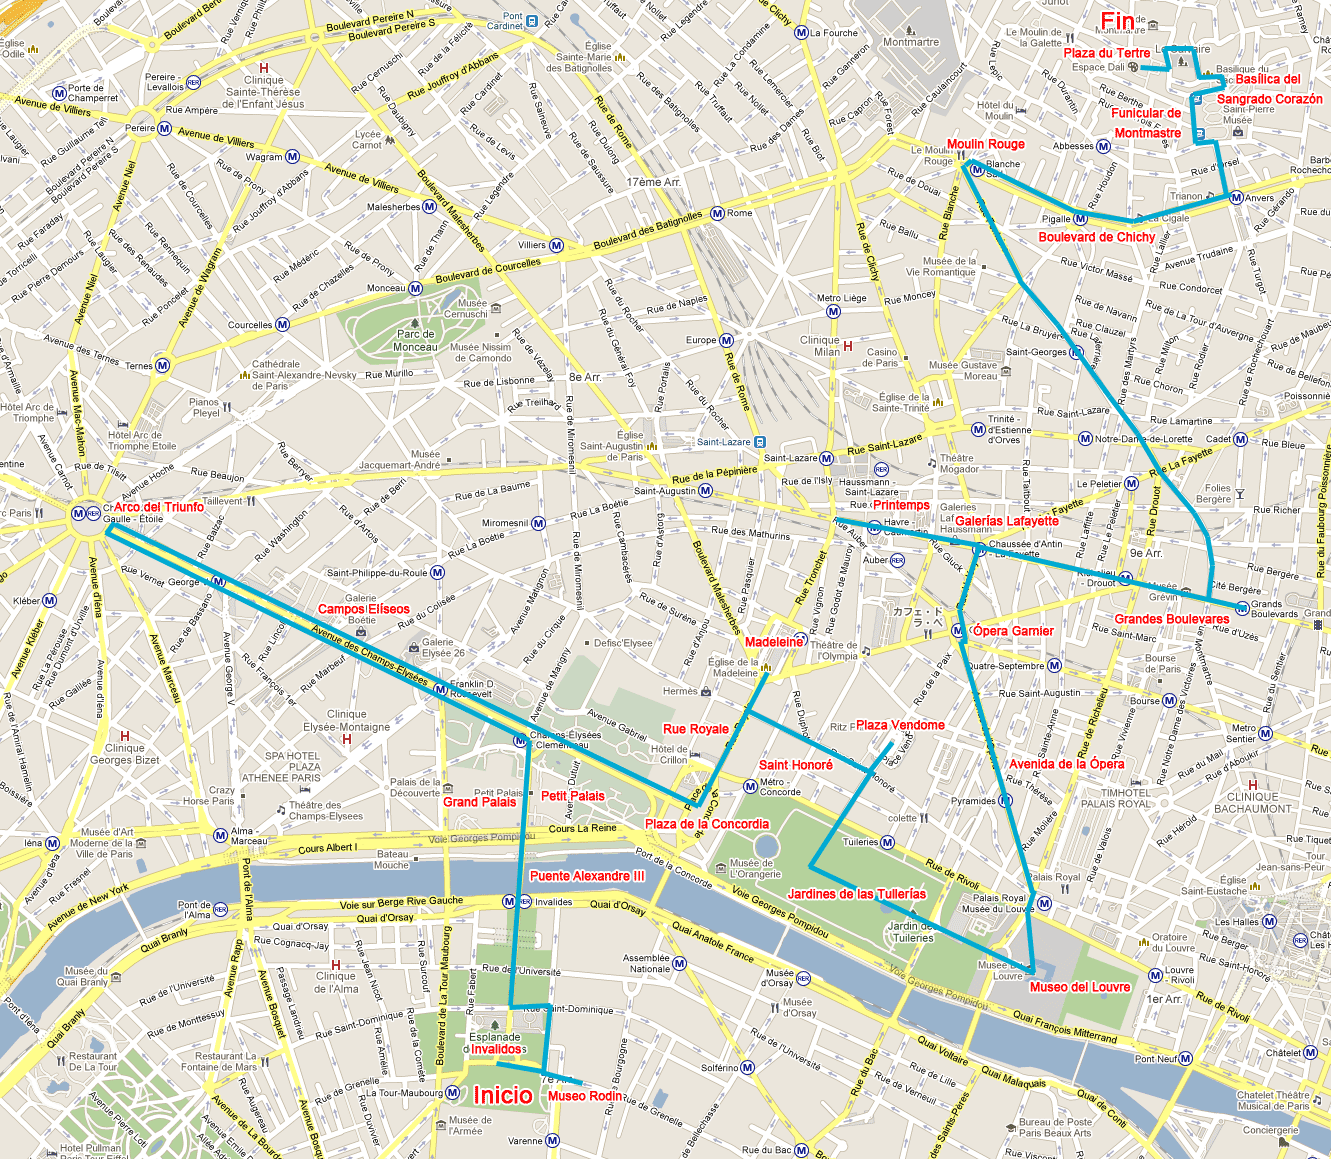 Map of Paris - Paris Interactive map Map My Delivery Route on map out a route trip, map my place, mapping a route, map of my land, map my drives, map my name, map my state, chart my route, map my trip, plan my route, map my run, map sf 5k route, map my city, map my distance,